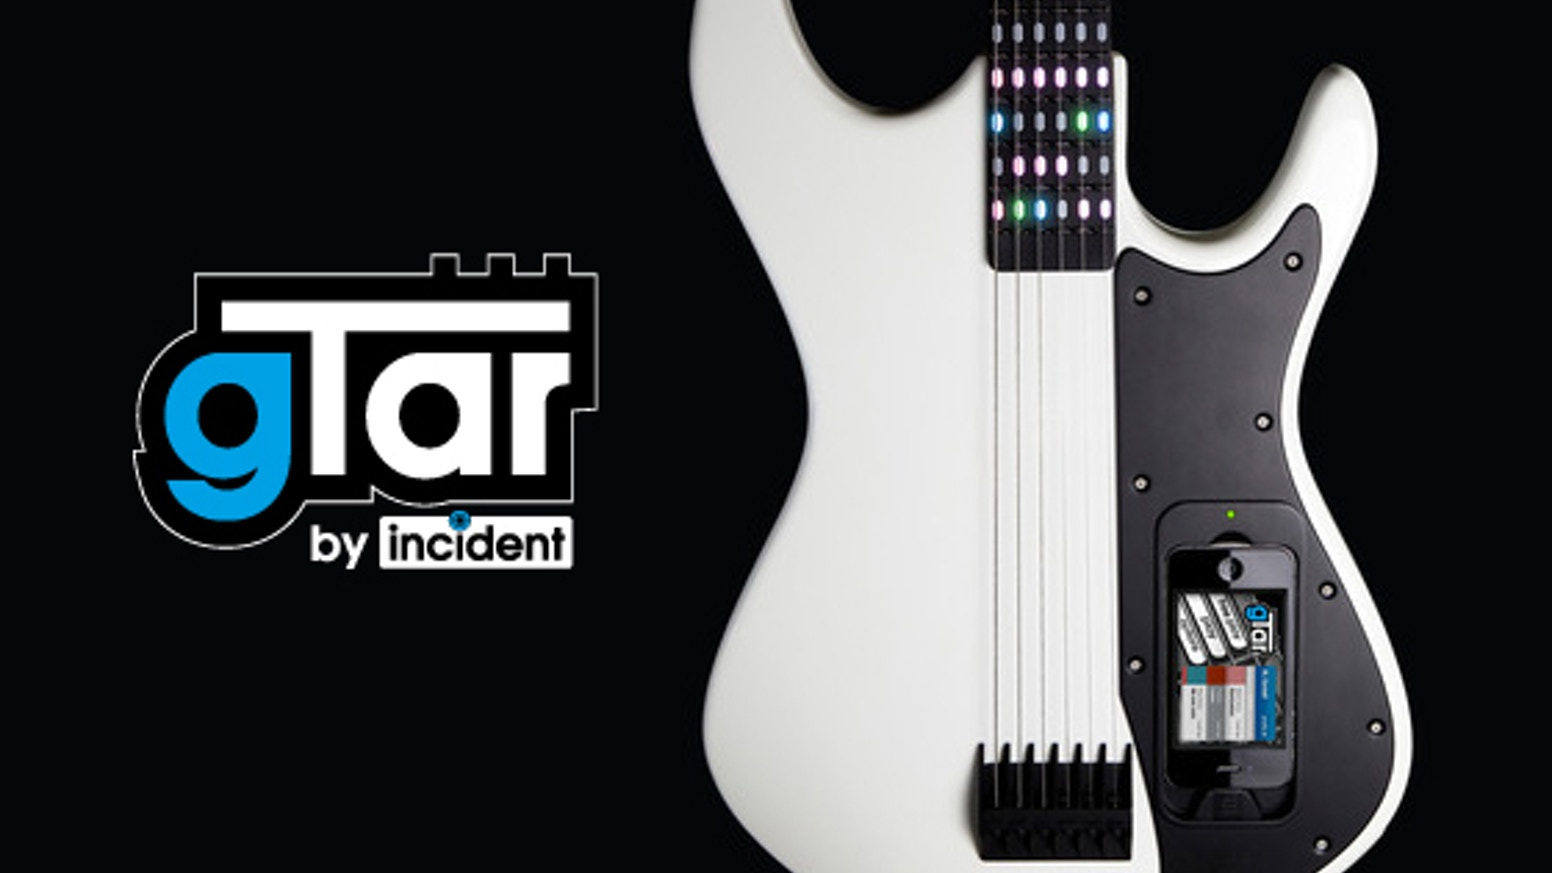 The gTar is a fully digital guitar that enables anybody to play music quickly and easily with the help of LEDs and a docked iPhone